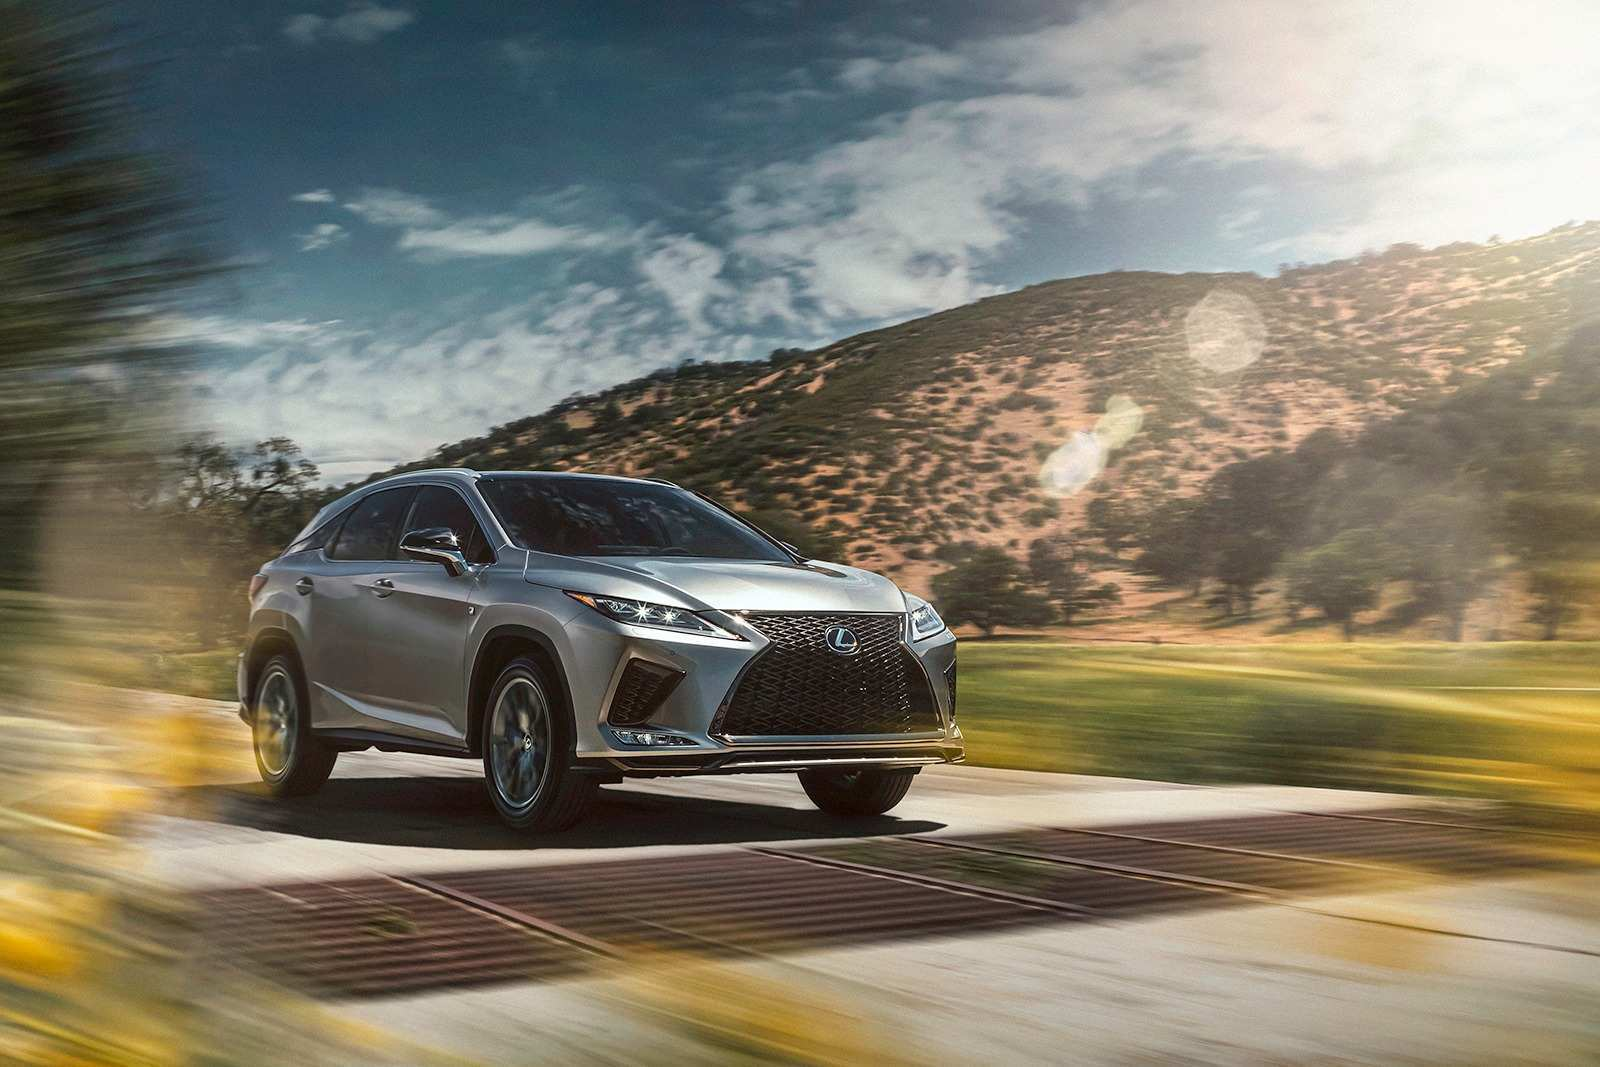 73 New When Will 2020 Lexus Suv Come Out Wallpaper